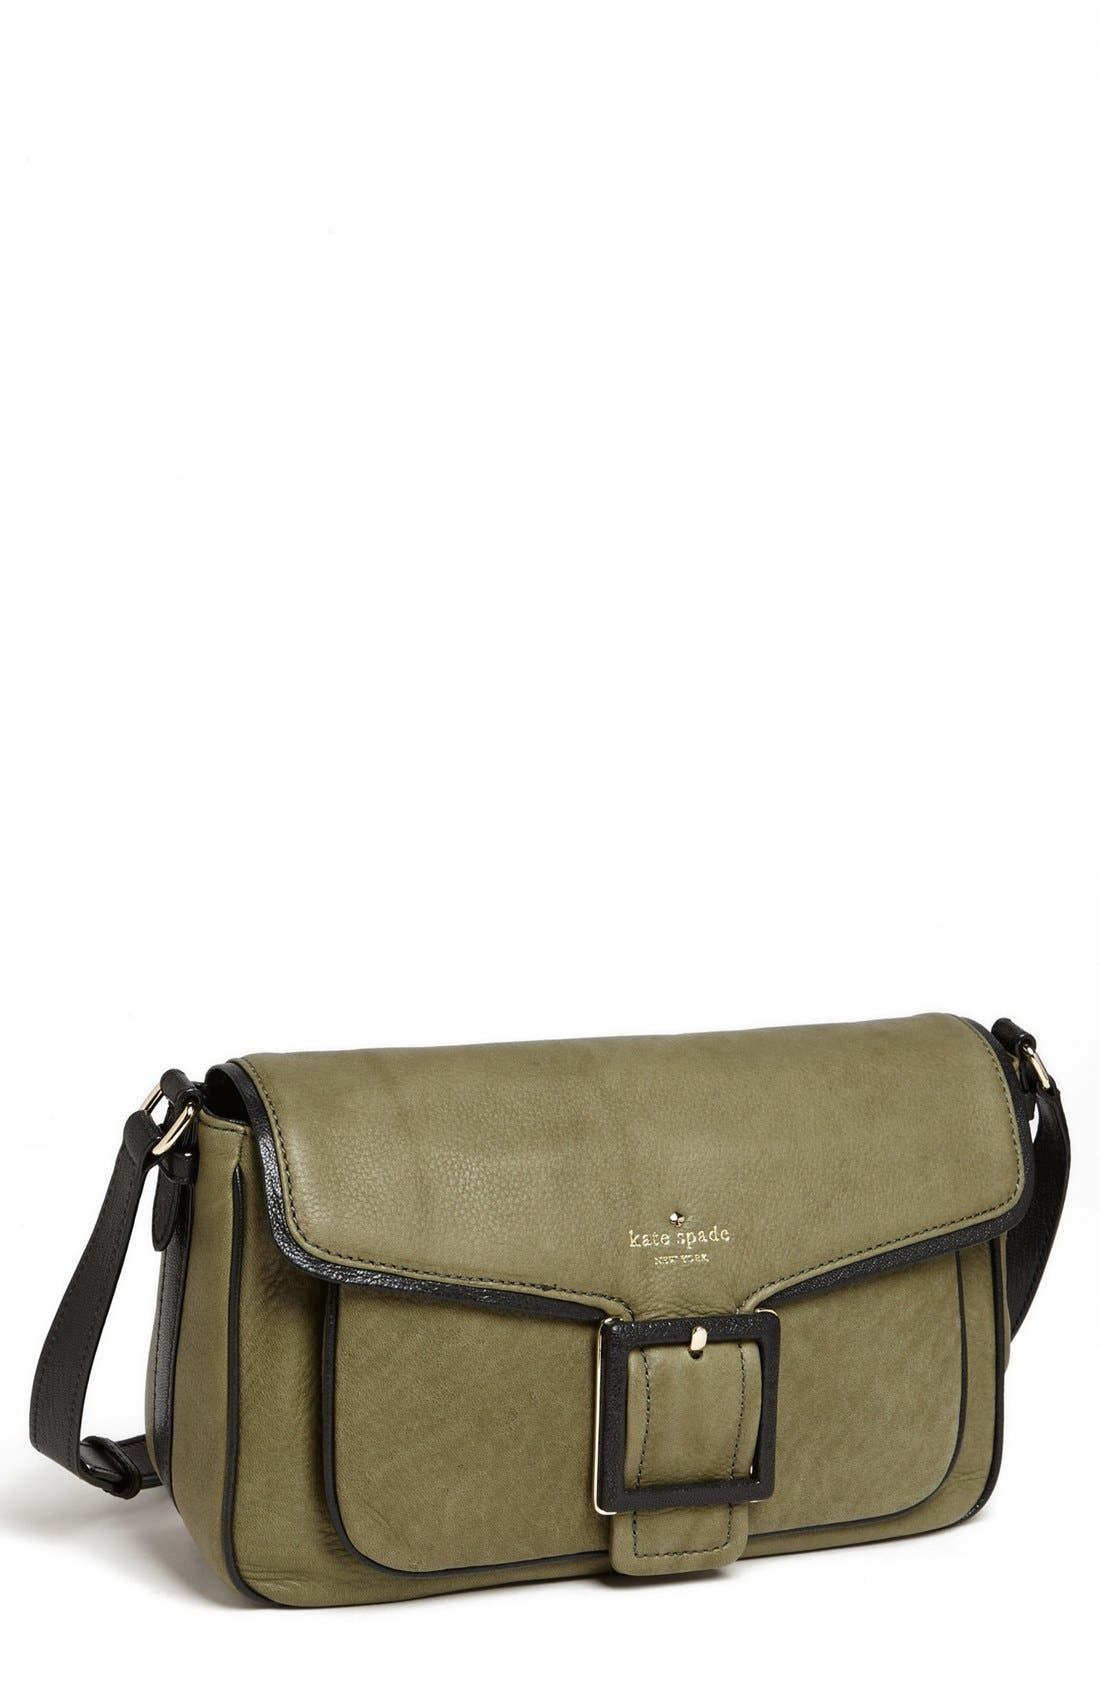 Main Image - kate spade new york 'abbey court - india' crossbody bag